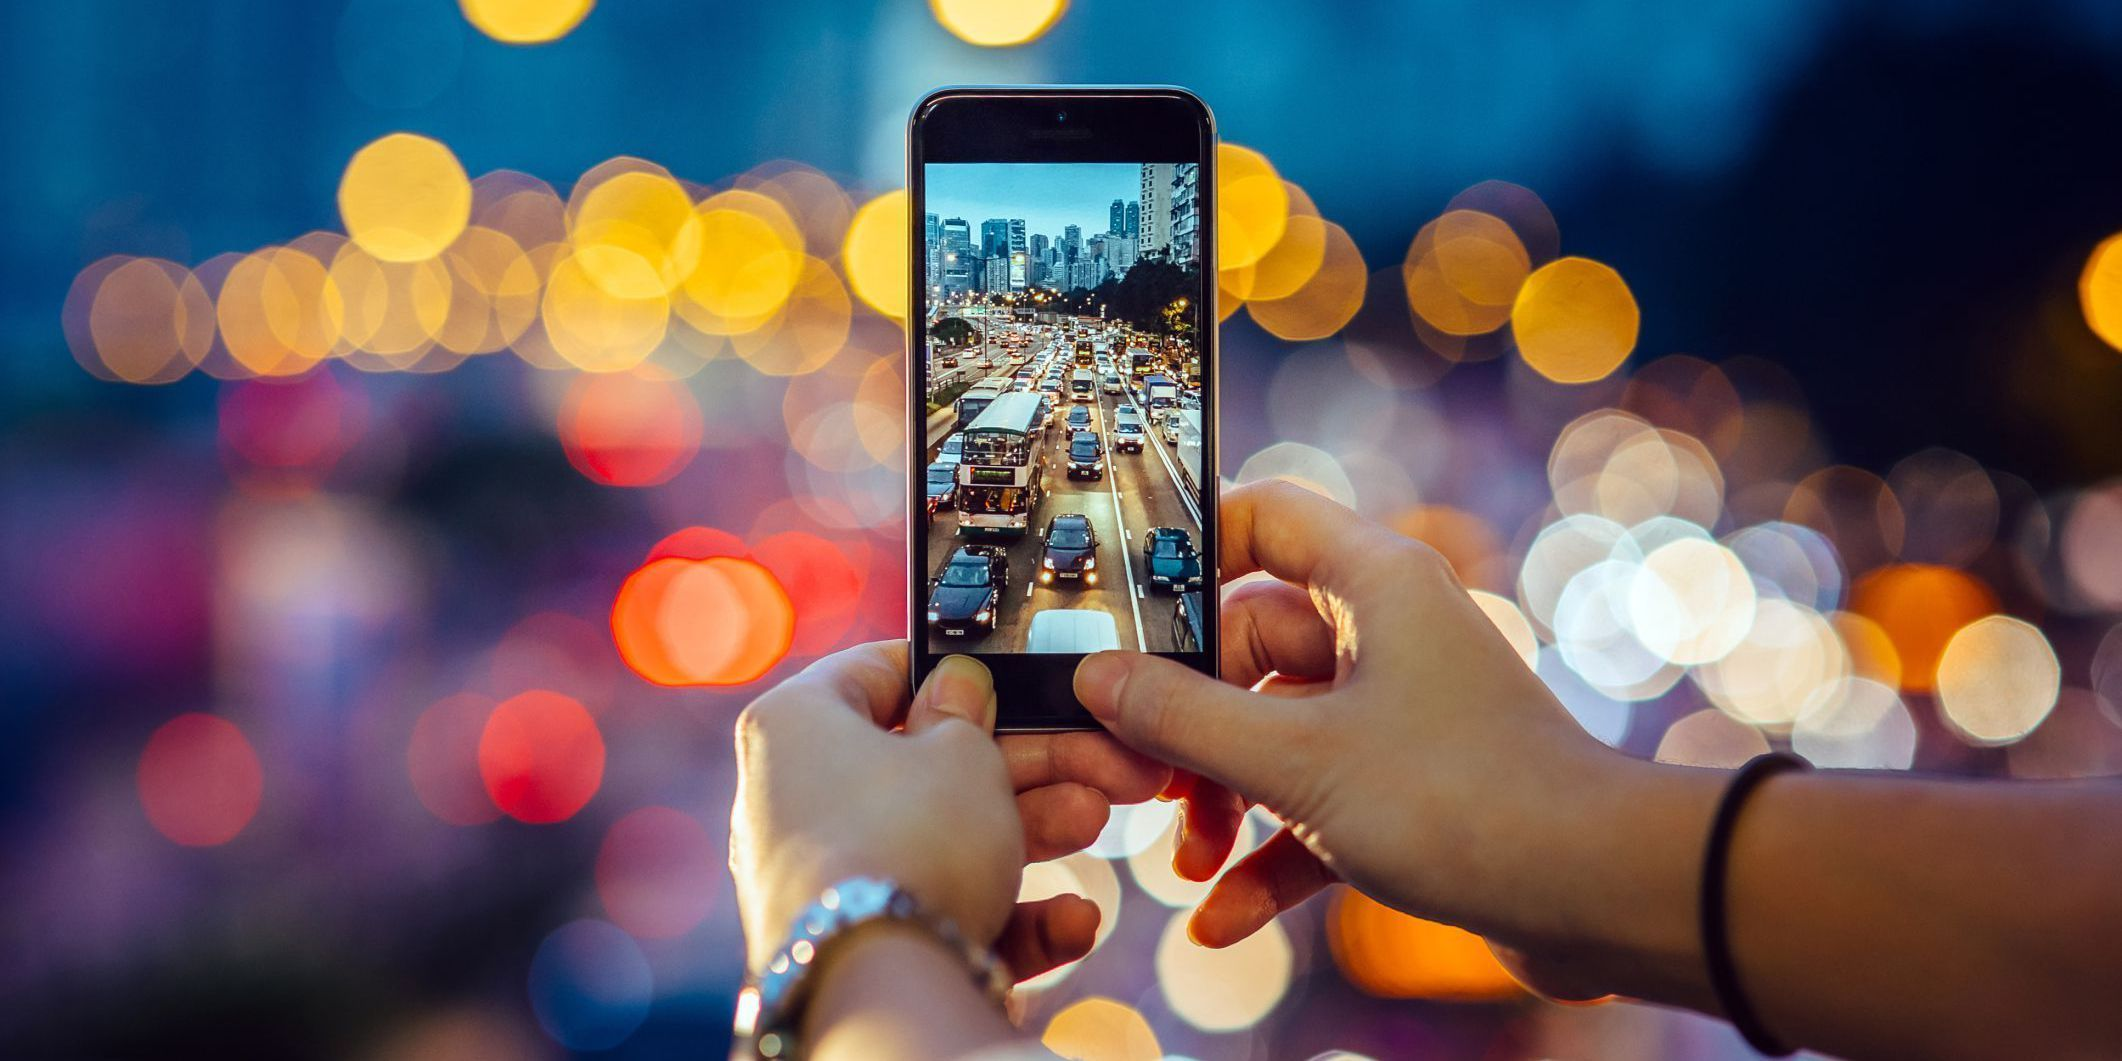 Pin On Photography: Smartphone Photography Guide